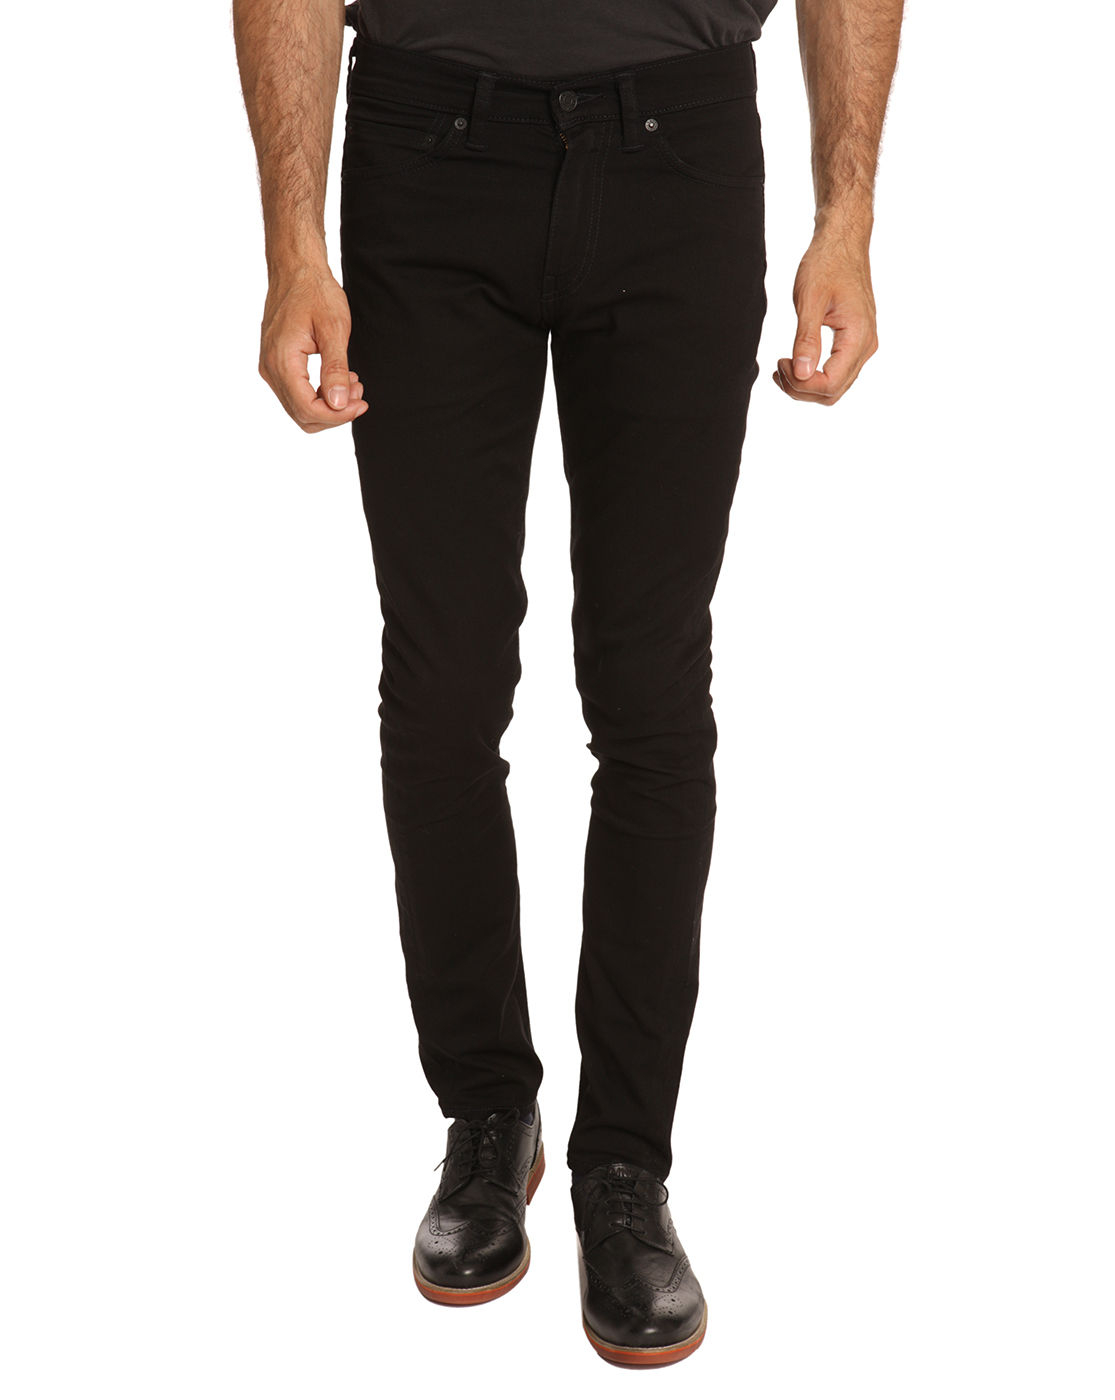 Levis Jeans For Men Black | www.imgkid.com - The Image Kid ...